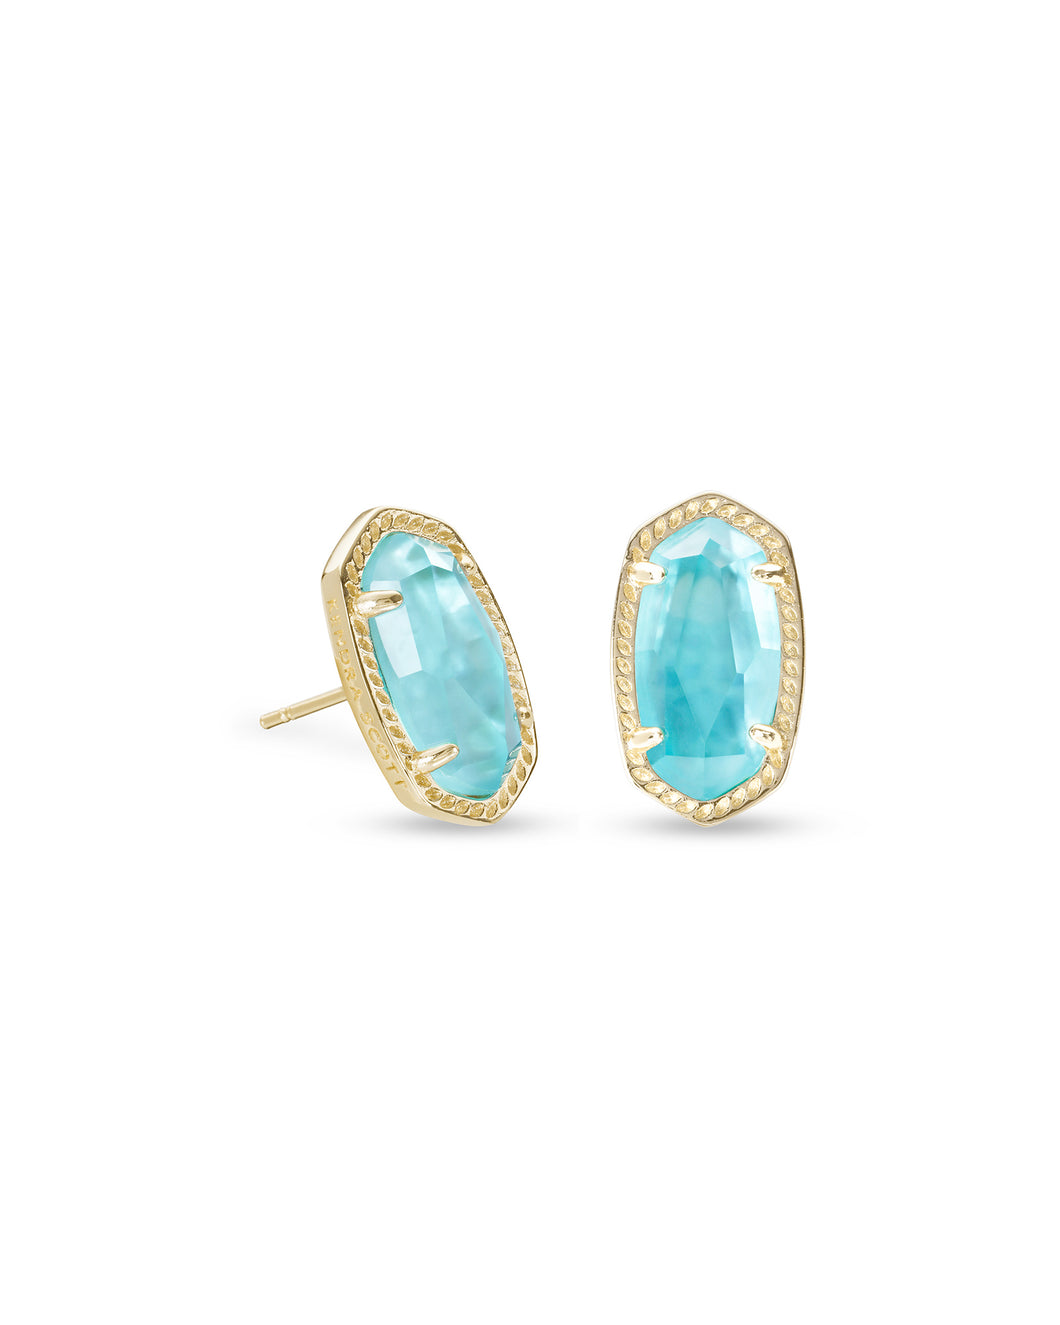 Kendra Scott Ellie Gold Earring in Aqua Illusion